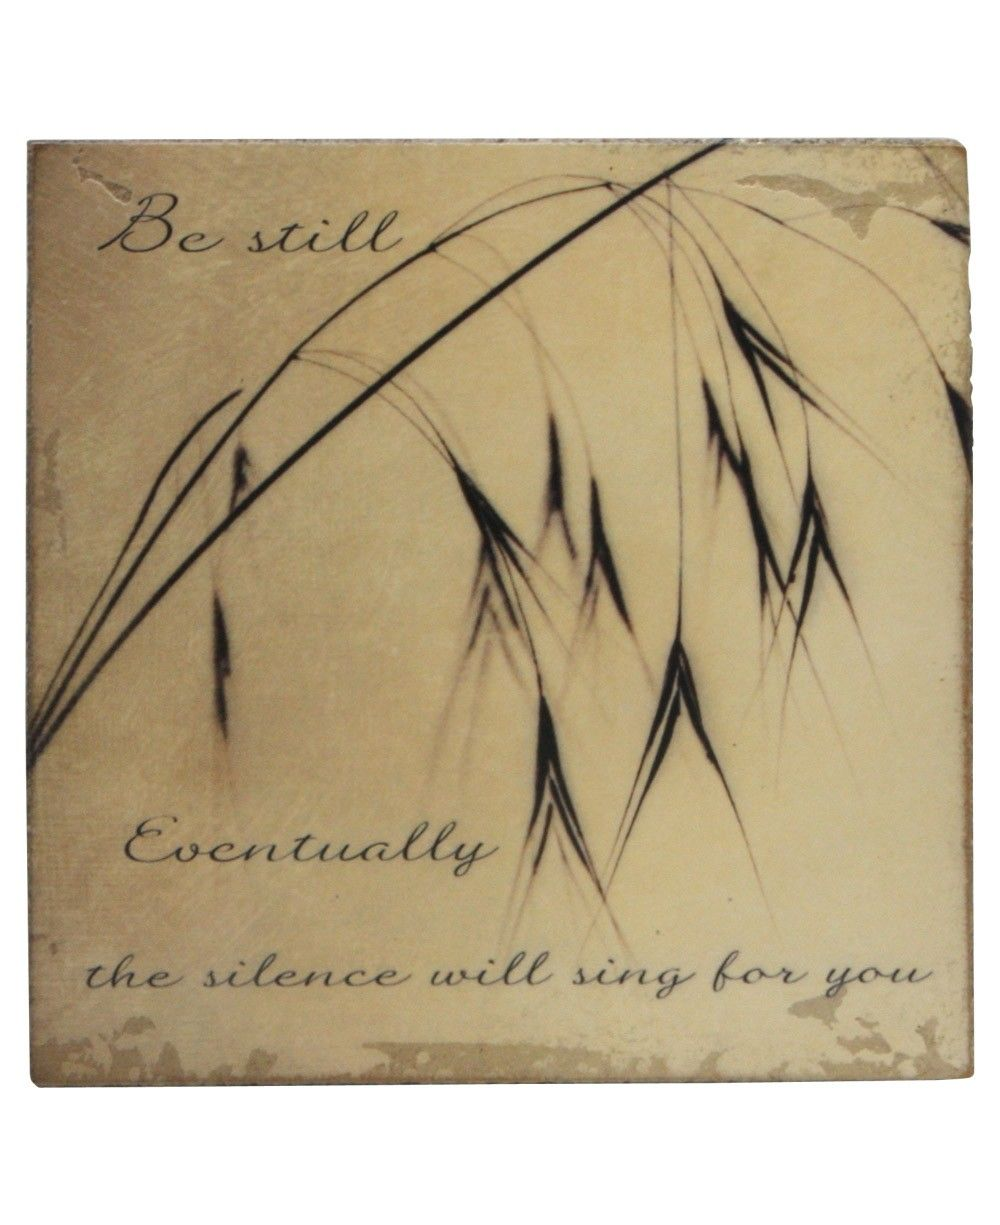 Be still. Eventually the silence will sing for you. These stunningly simple pieces of wall art are handcrafted using traditional plastering techniques applied in multiple layers over wood.